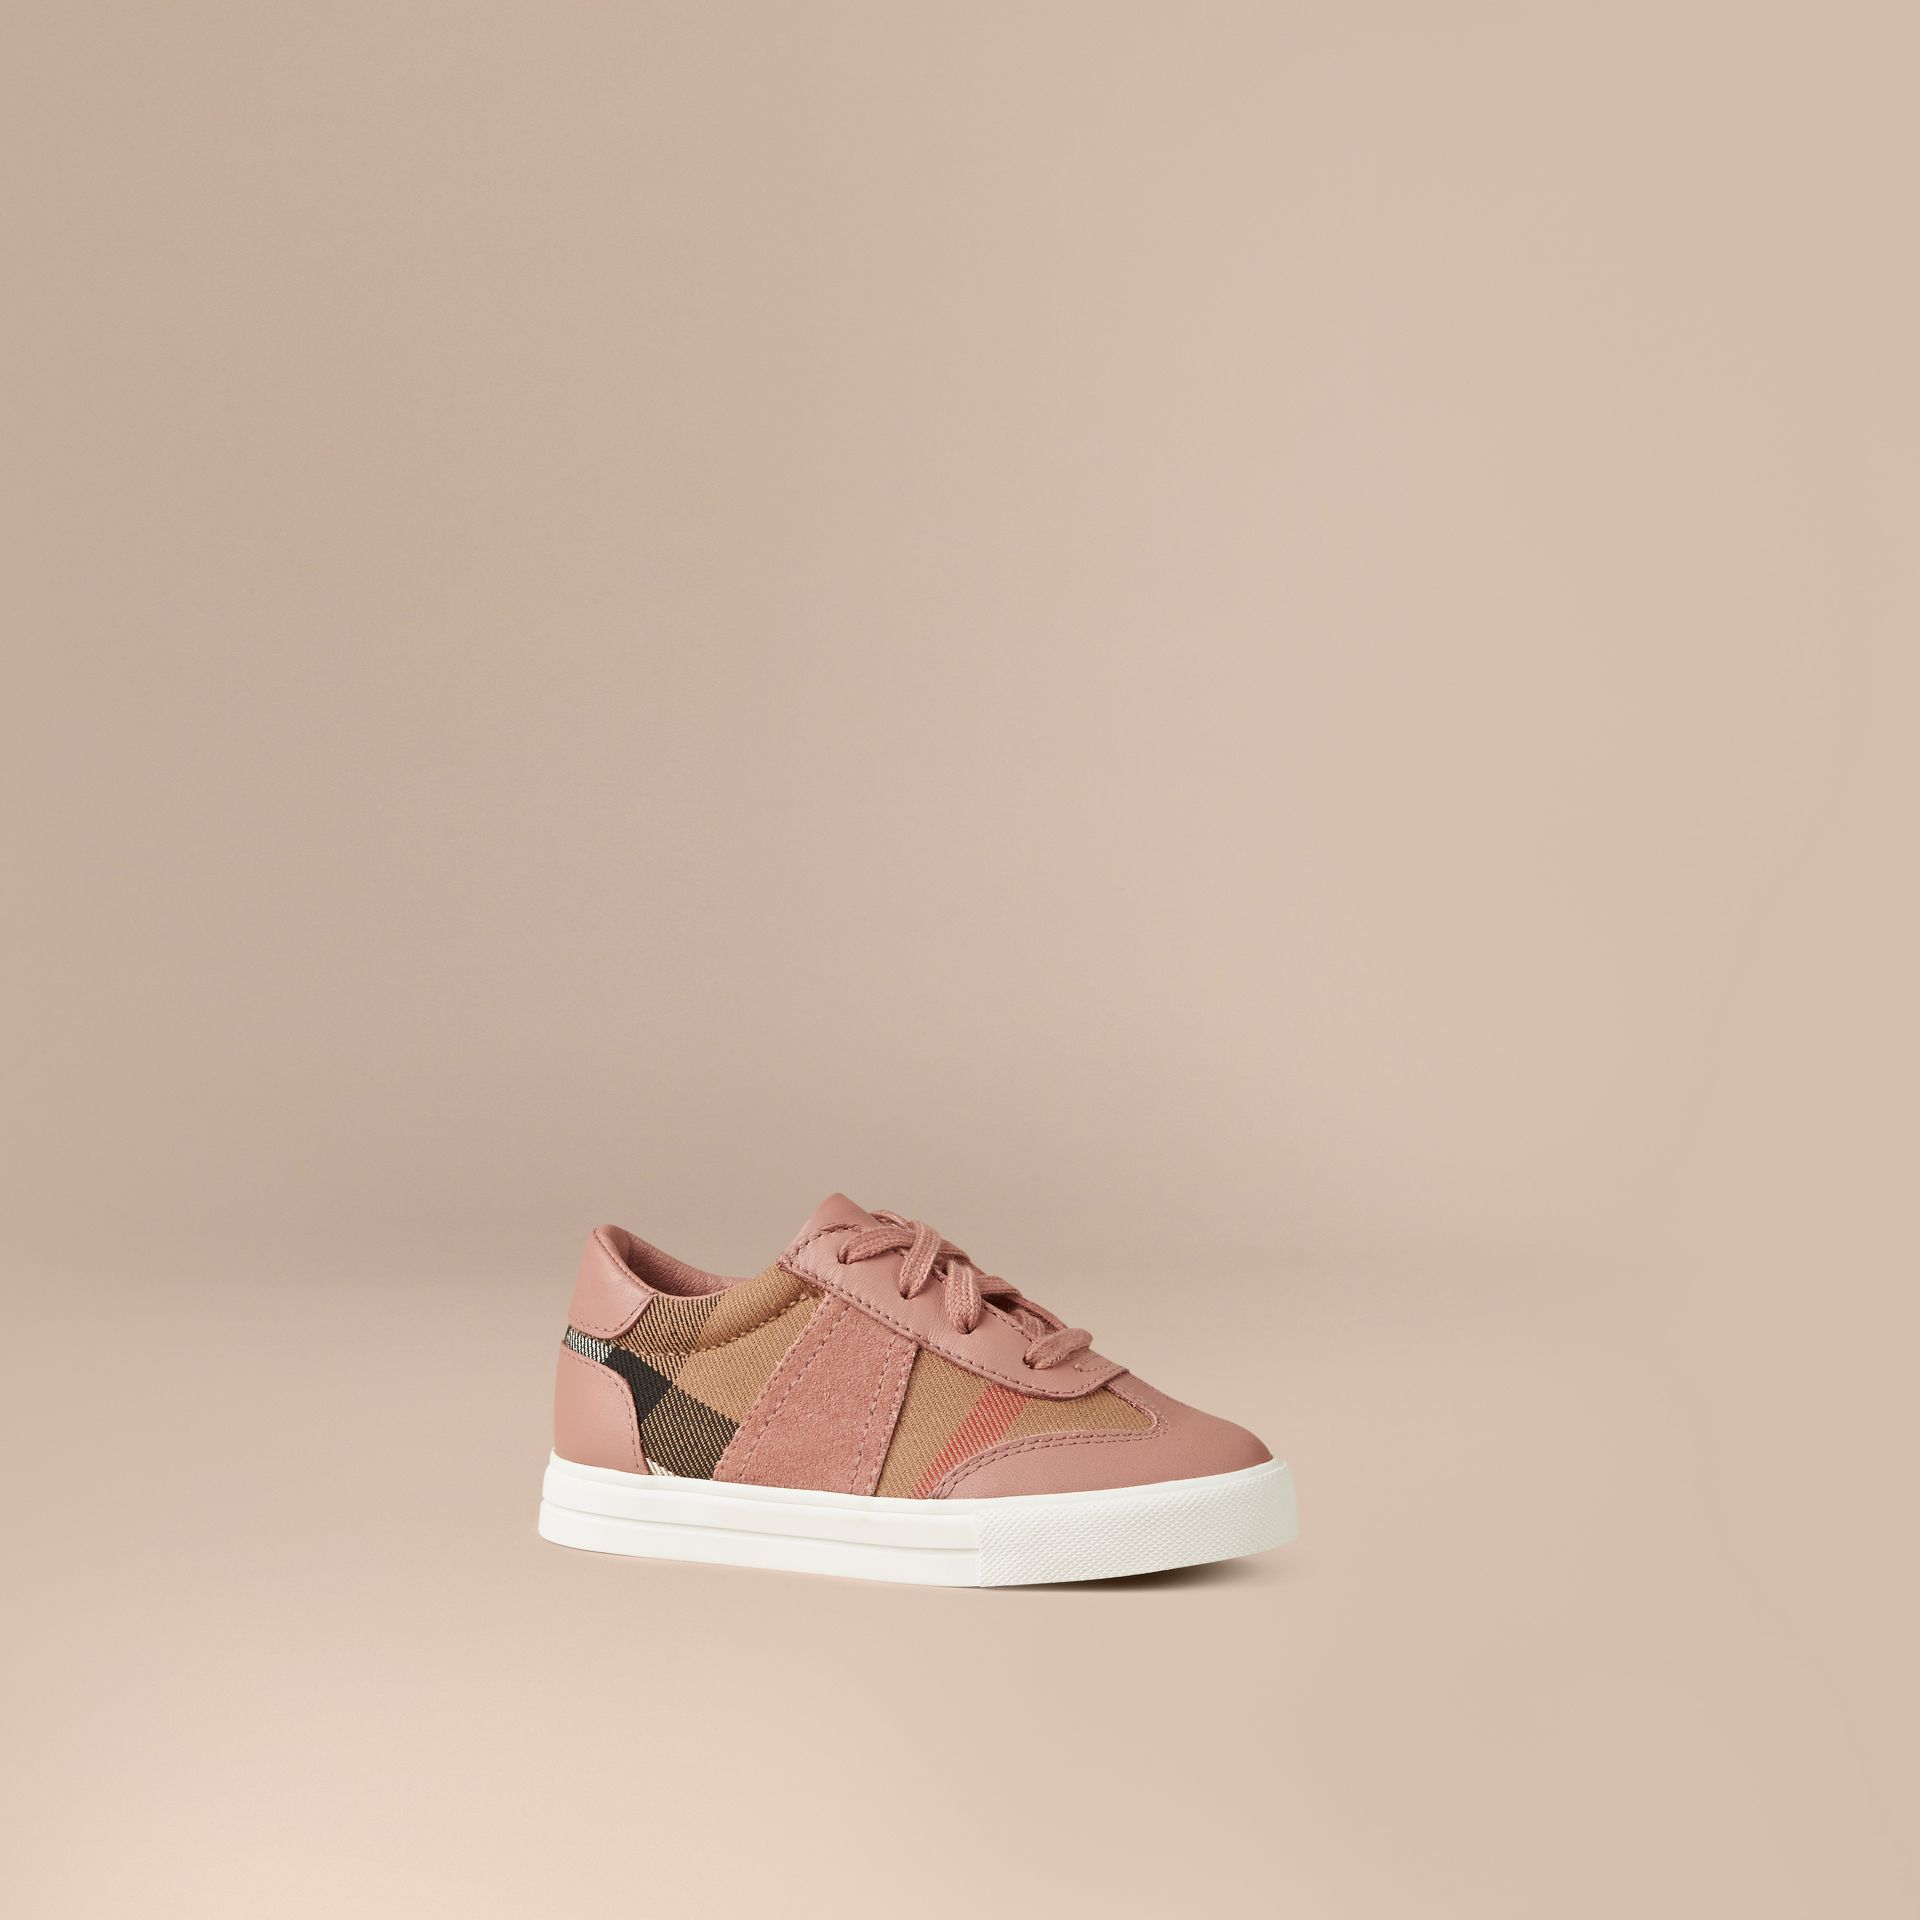 Nude blush House Check and Leather Trainers Nude Blush - gallery image 1